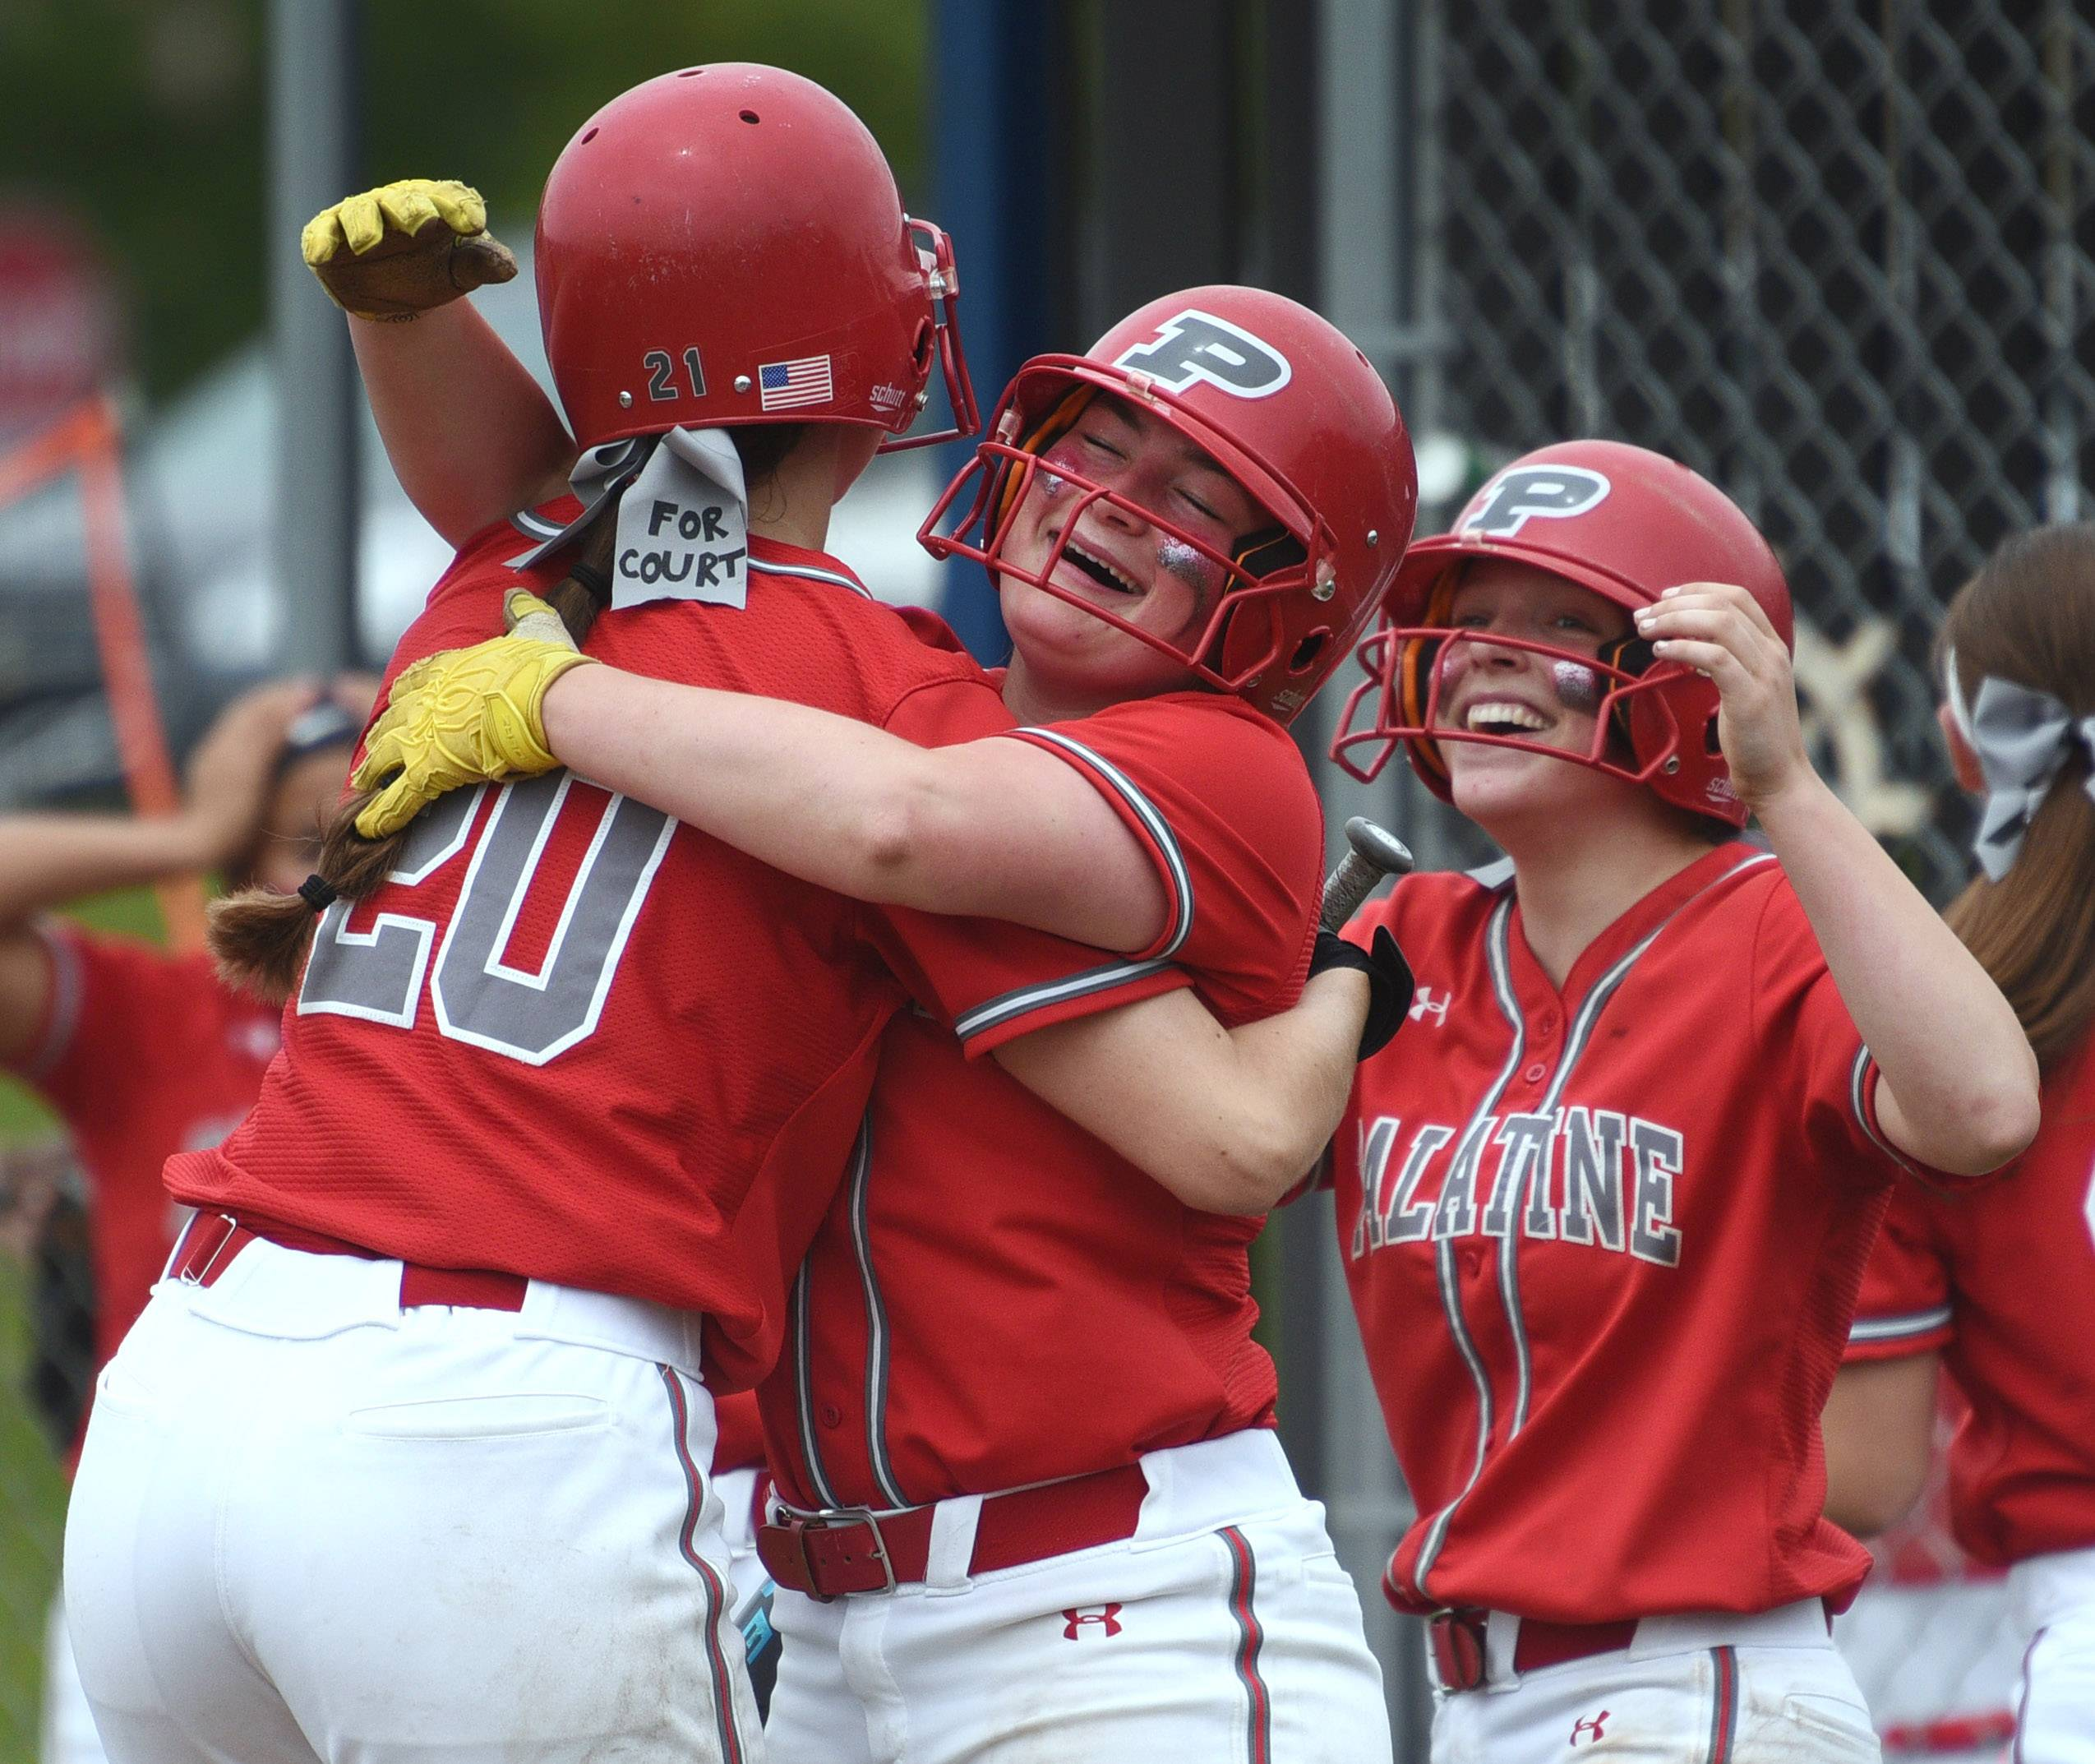 After hitting a grand slam in the seventh inning, Palatine's Amanda Stanczuk (20) is congratulated by teammates Grace Huff and Maddie Craver, right, during Saturday's Class 4A sectional championship game against host Warren.